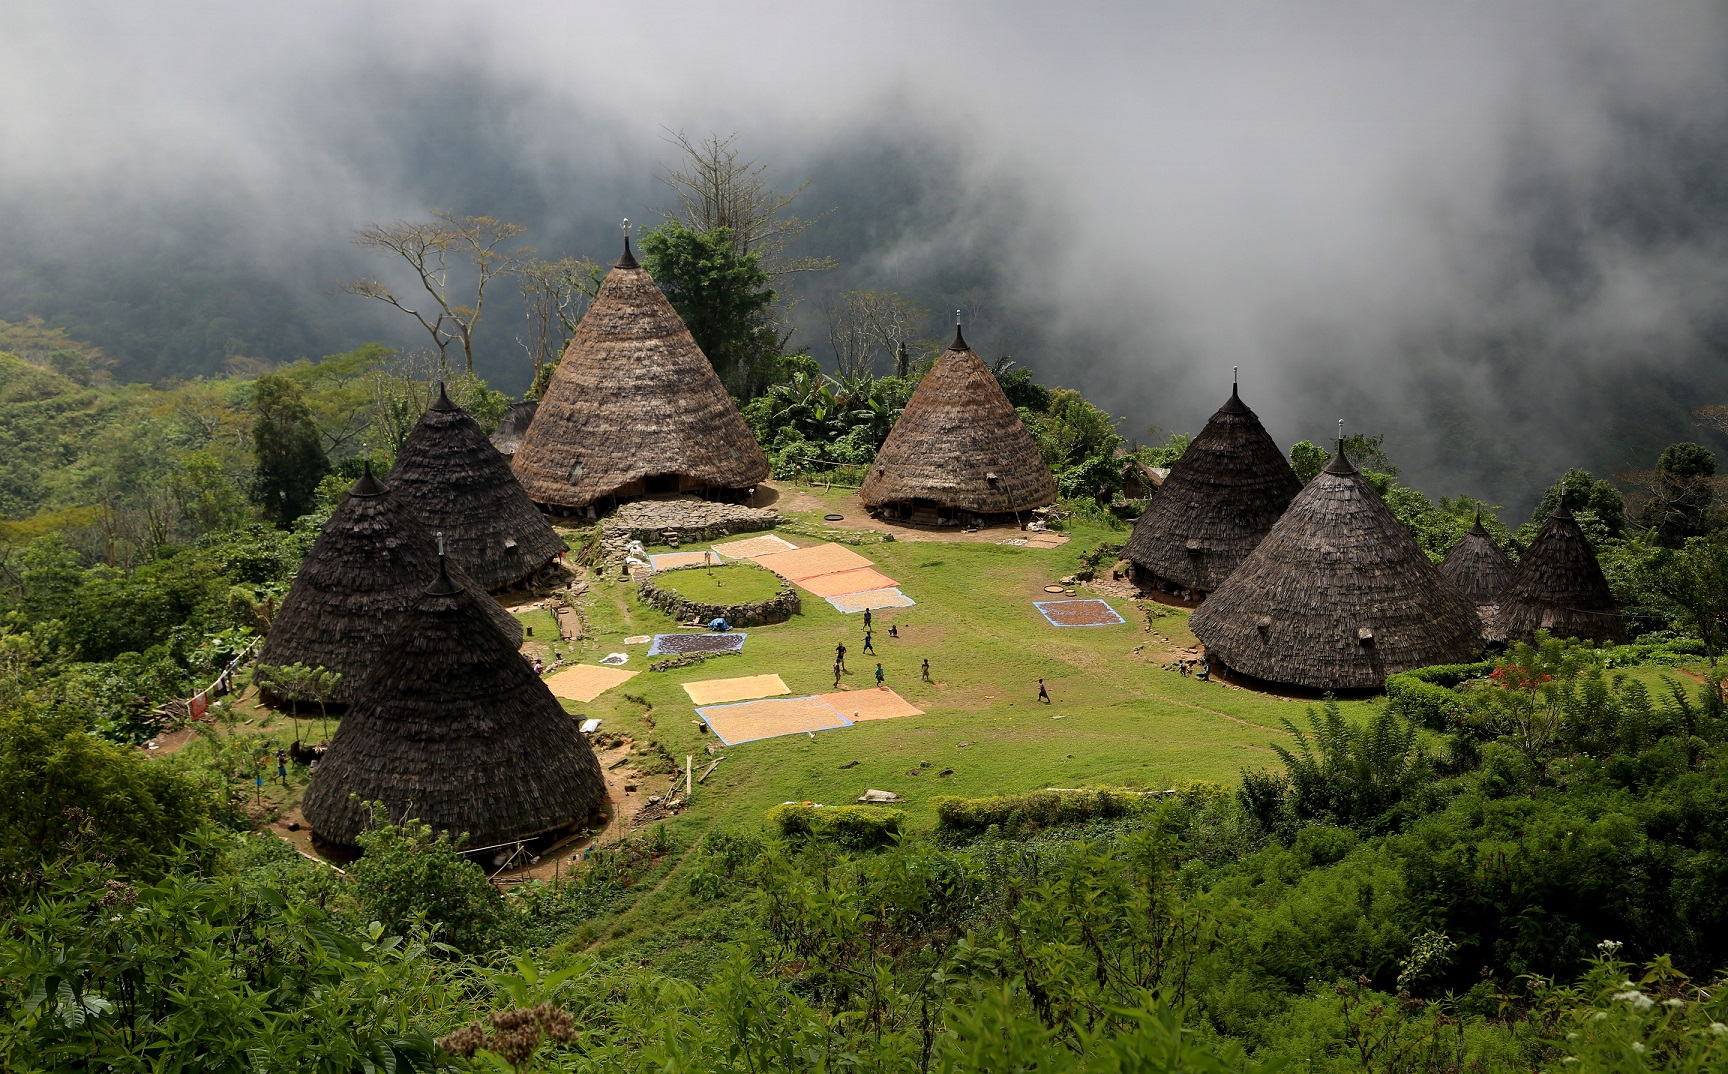 A view of an Indonesian village